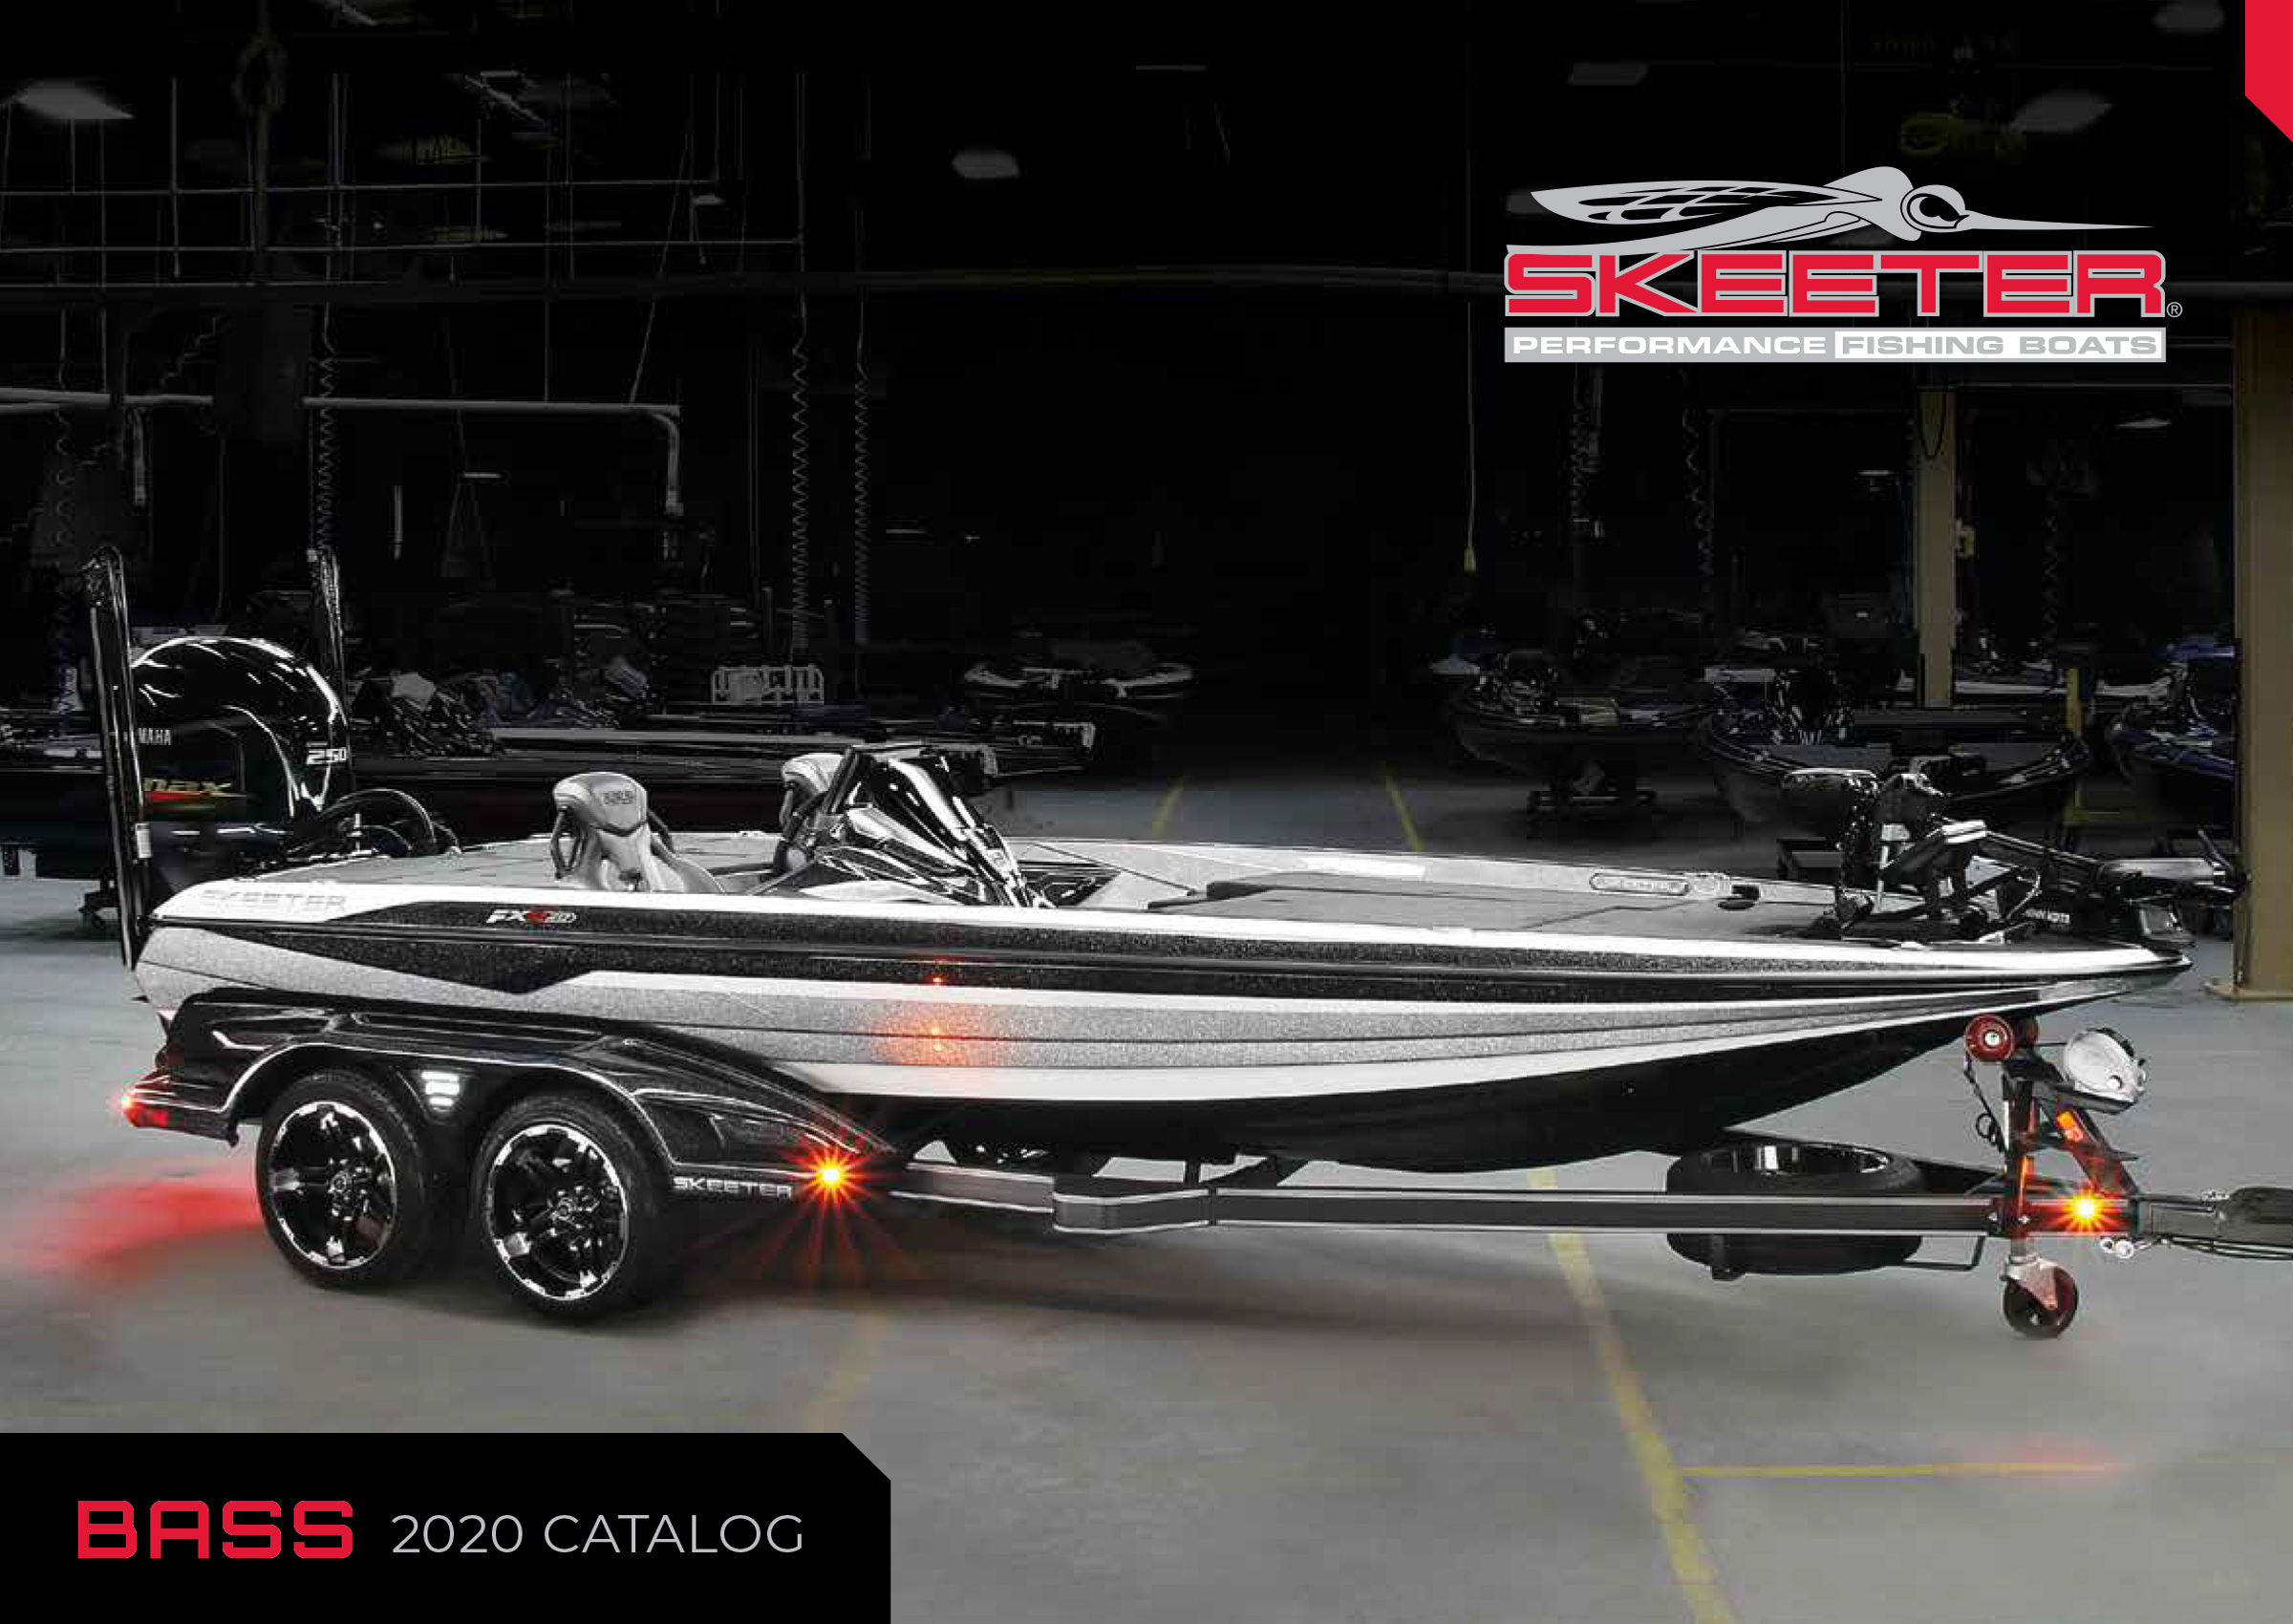 2020-Skeeter-Bass-Catalog-1.jpg